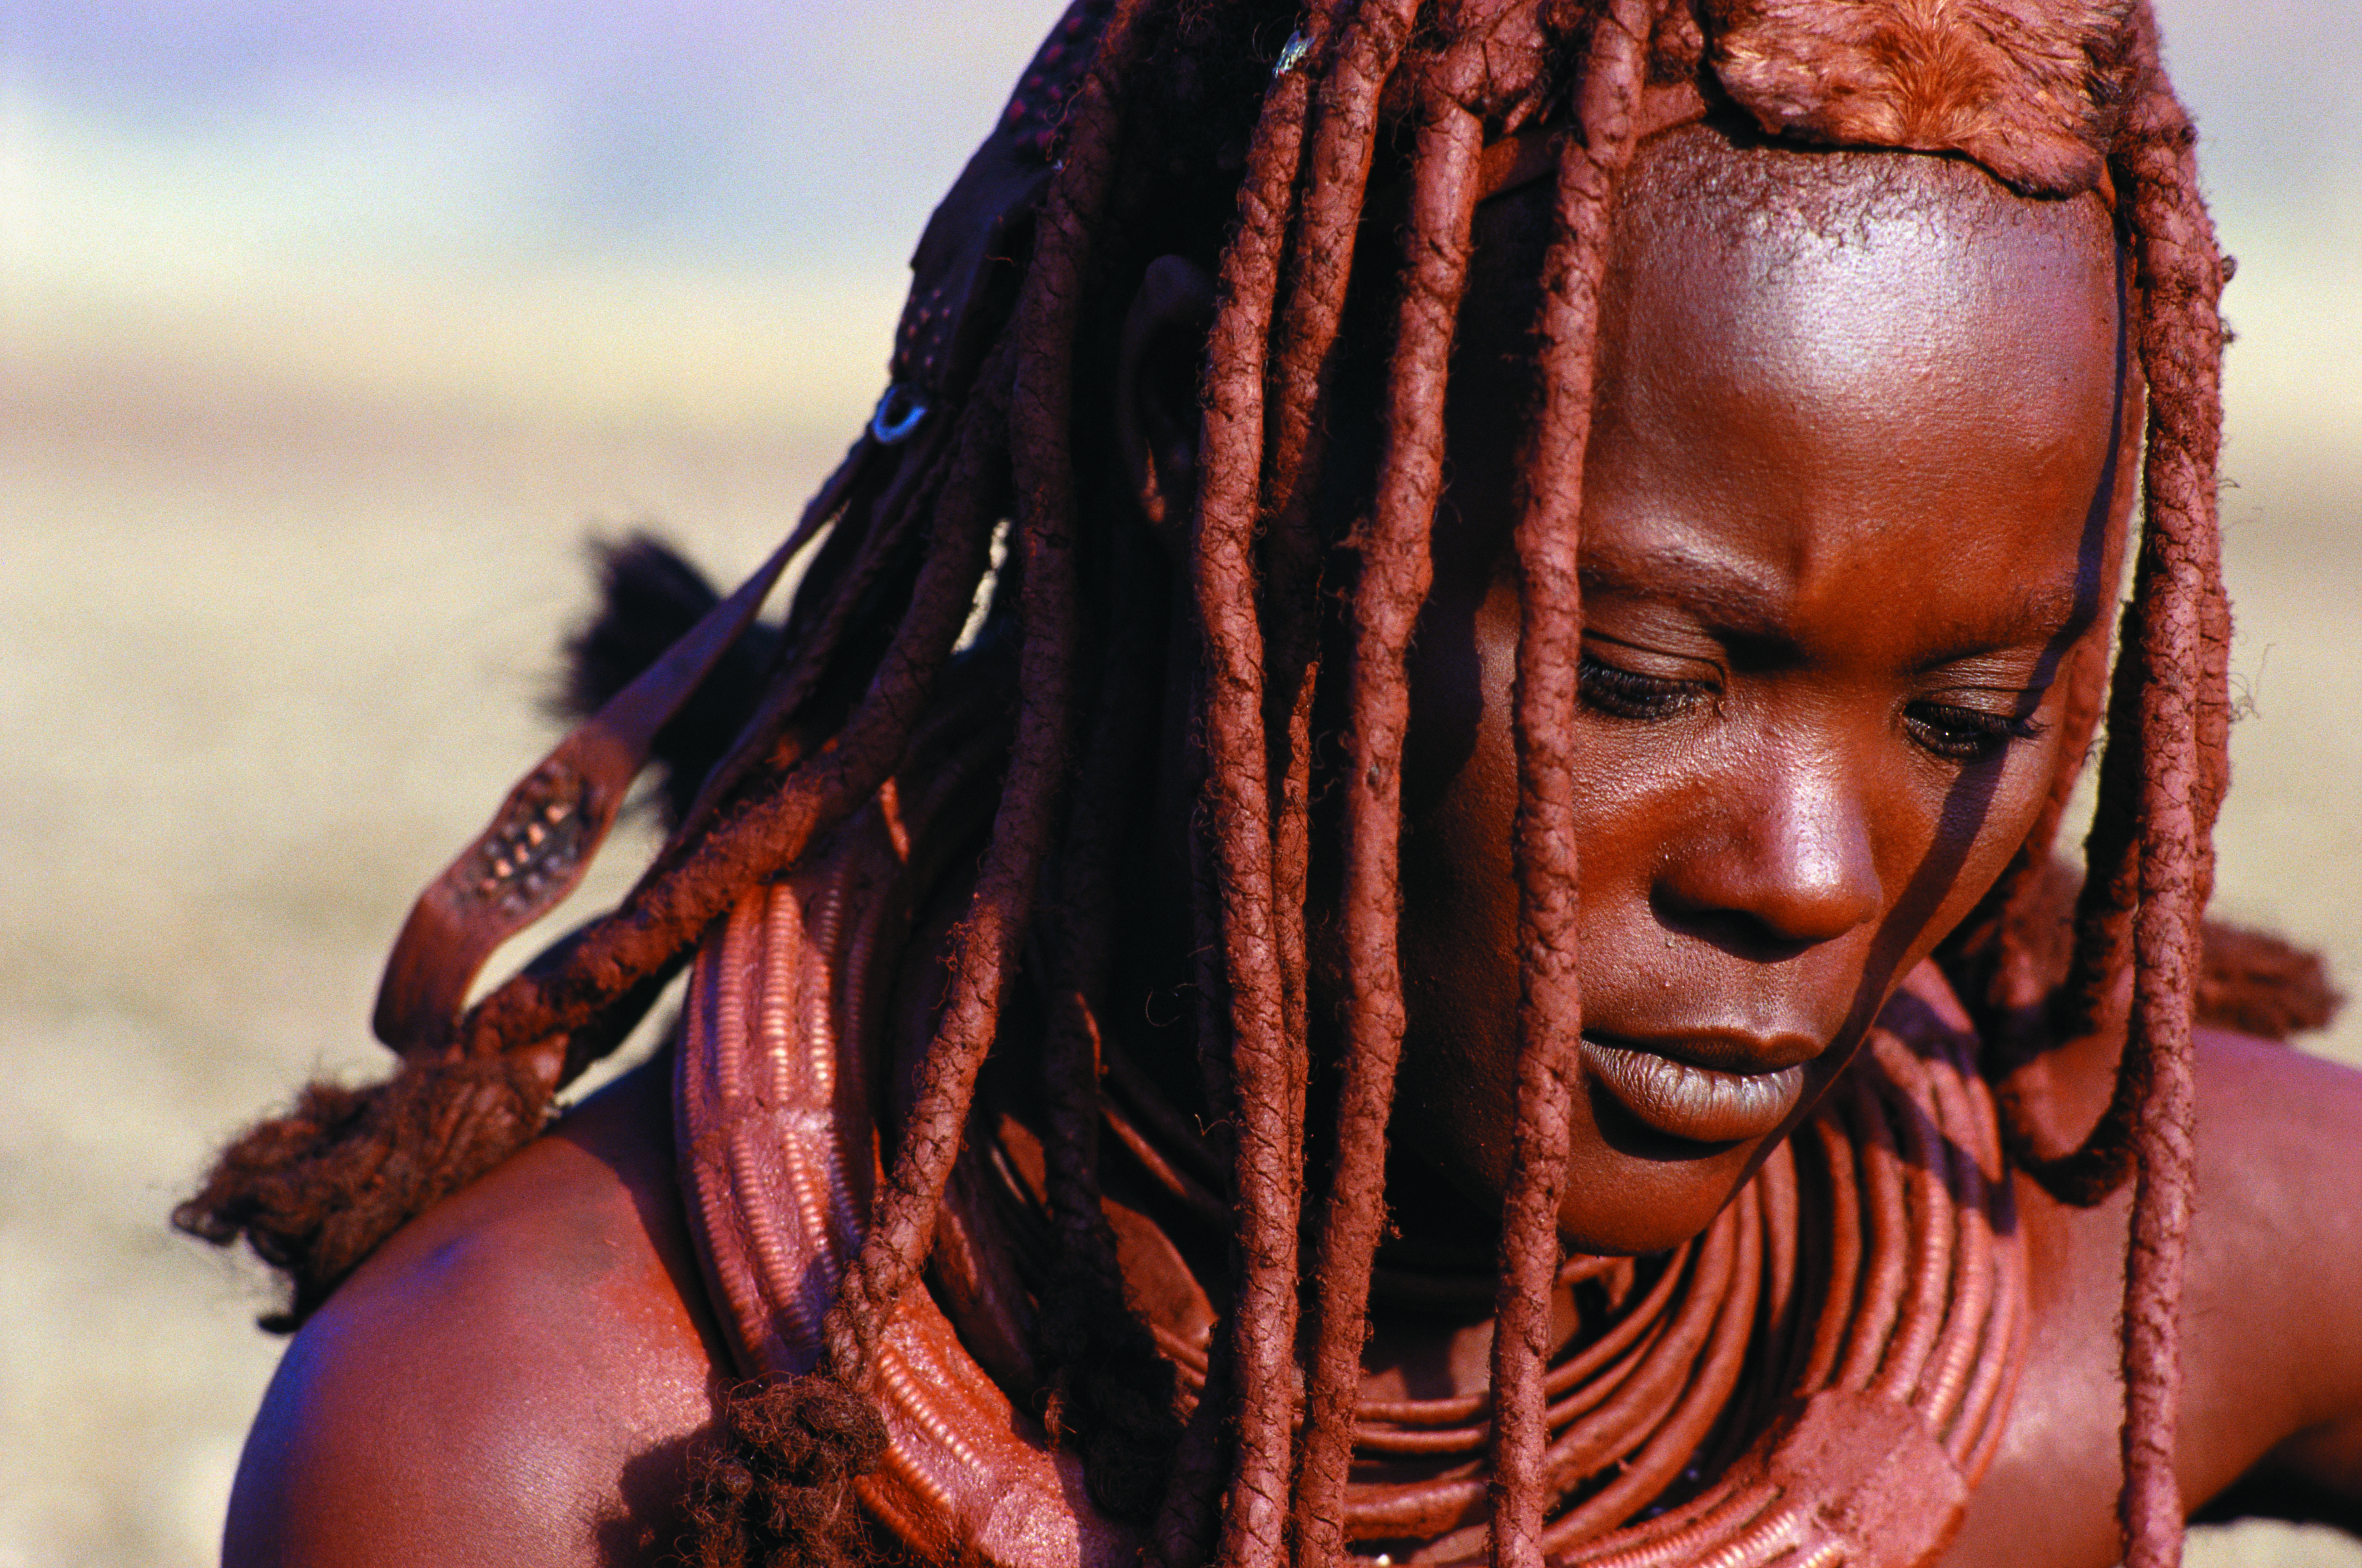 A Himba woman in Northern Namibia, where they use a combination of butter, fat and red ochre to get their braids this shade of copper.